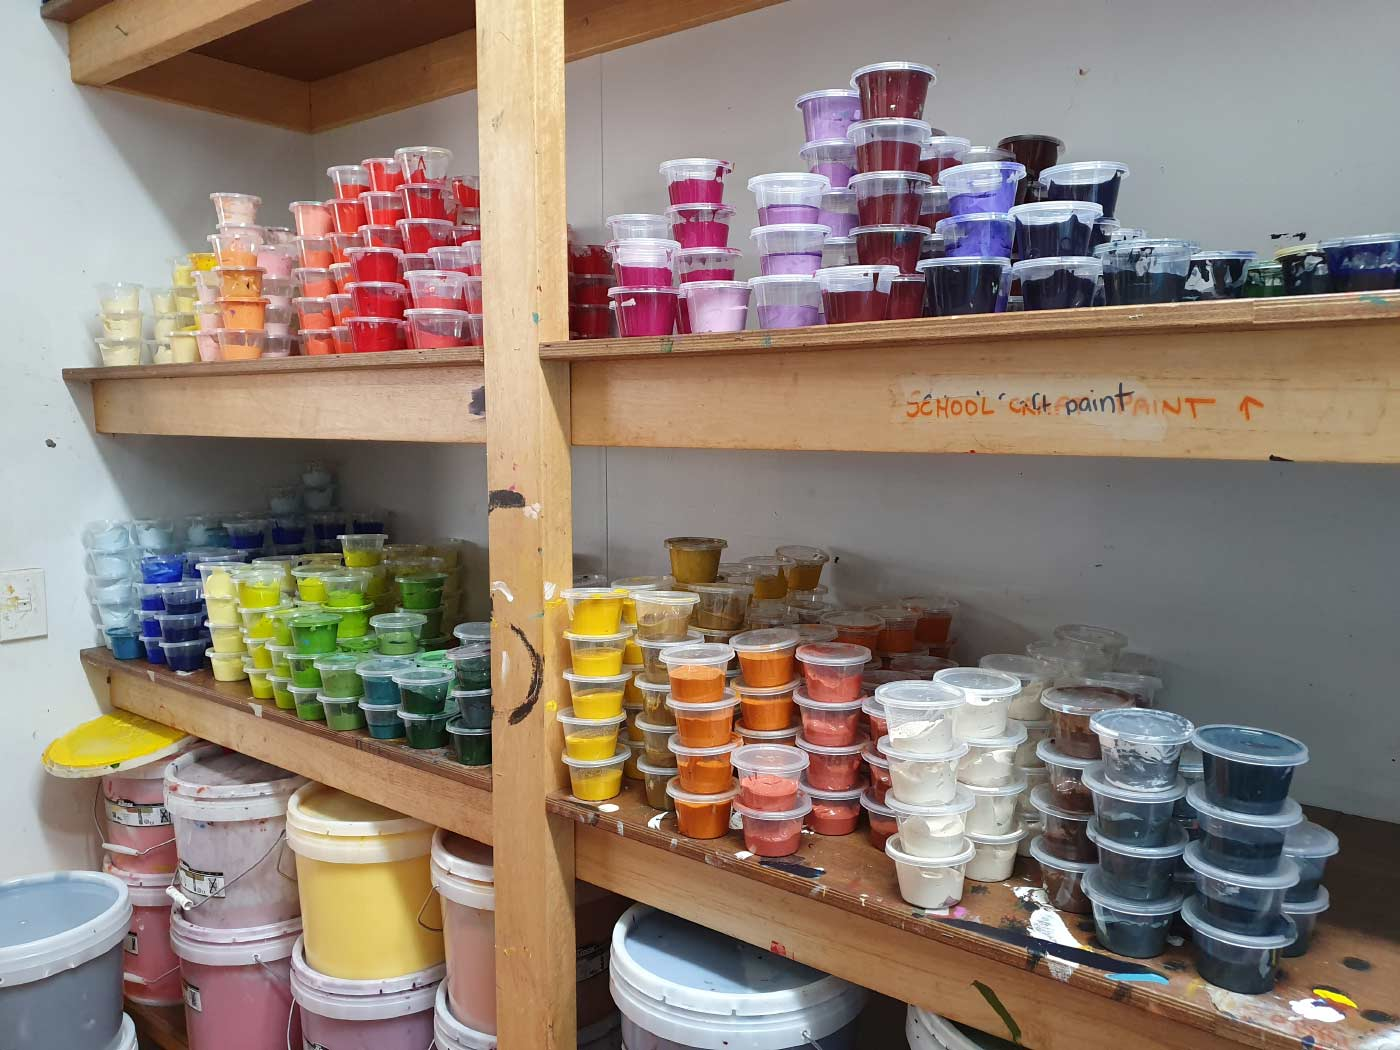 Colour photo of a large supply of coloured pigments on a shelf. - click to view larger image